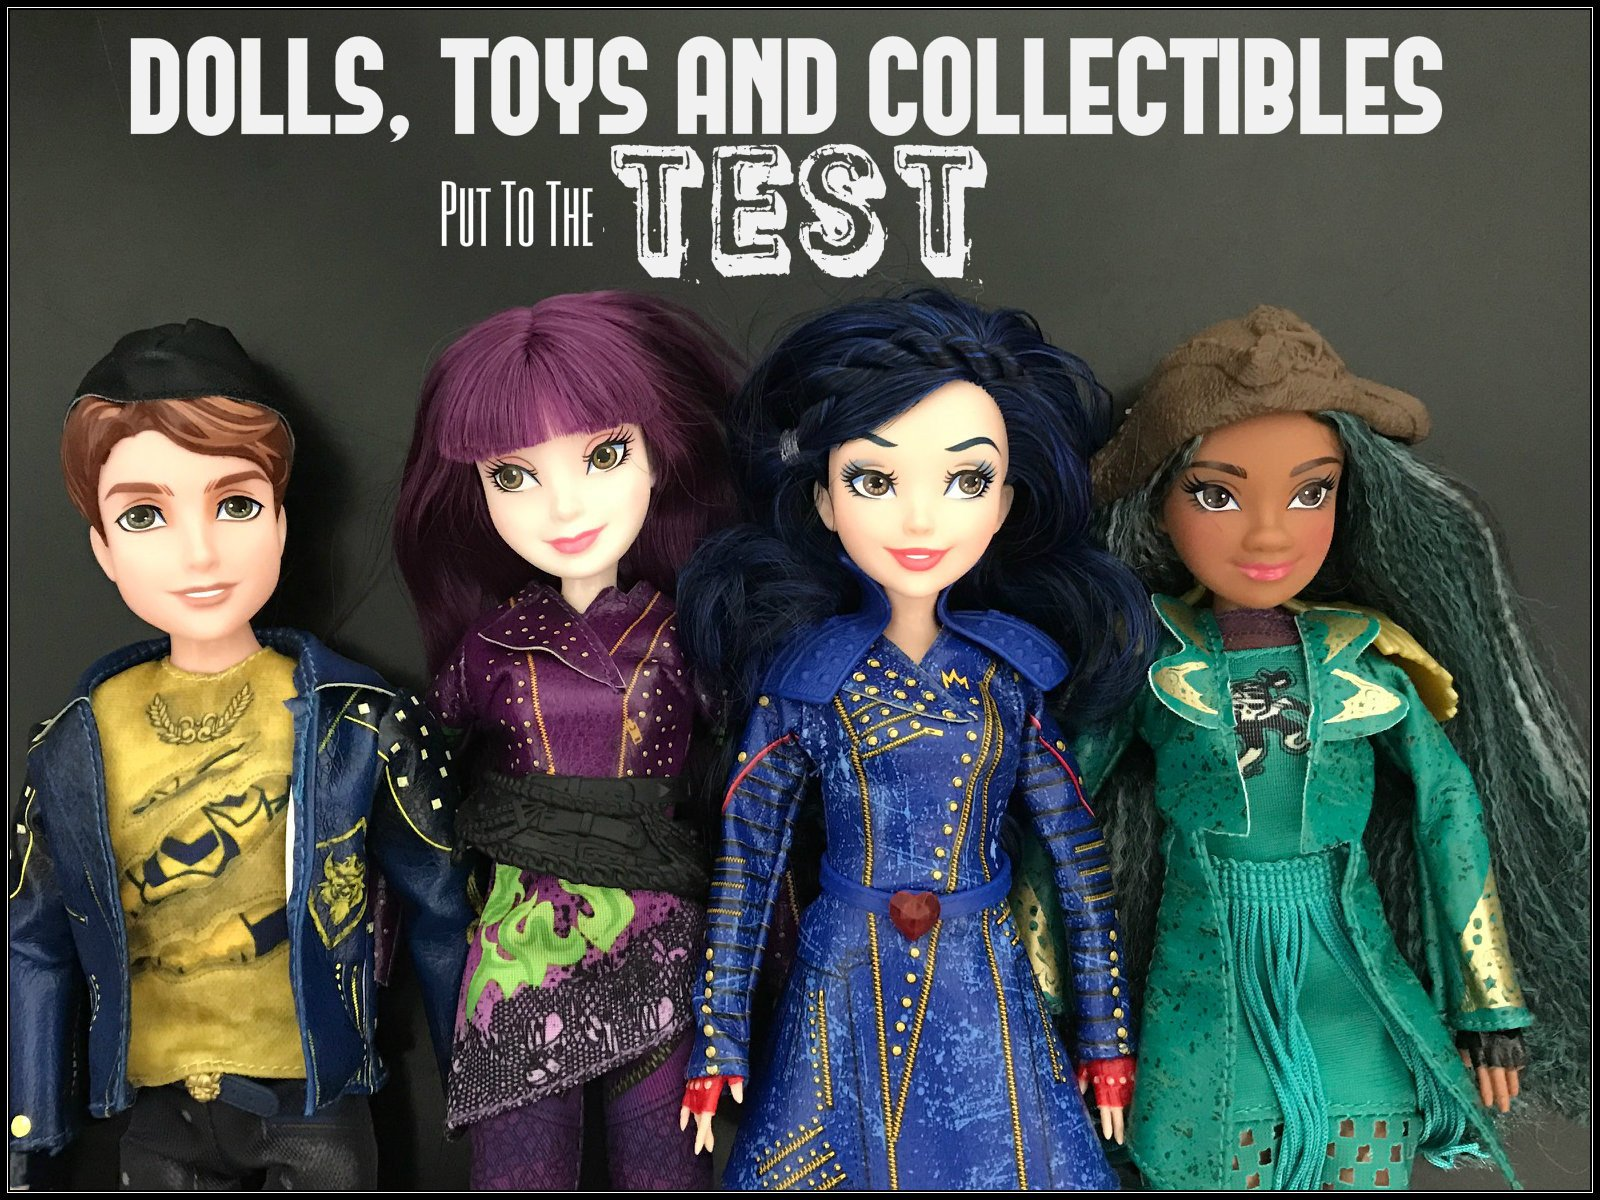 Doll Toys In Amazon Watch Review Dolls Toys And Collectibles Put To The Test